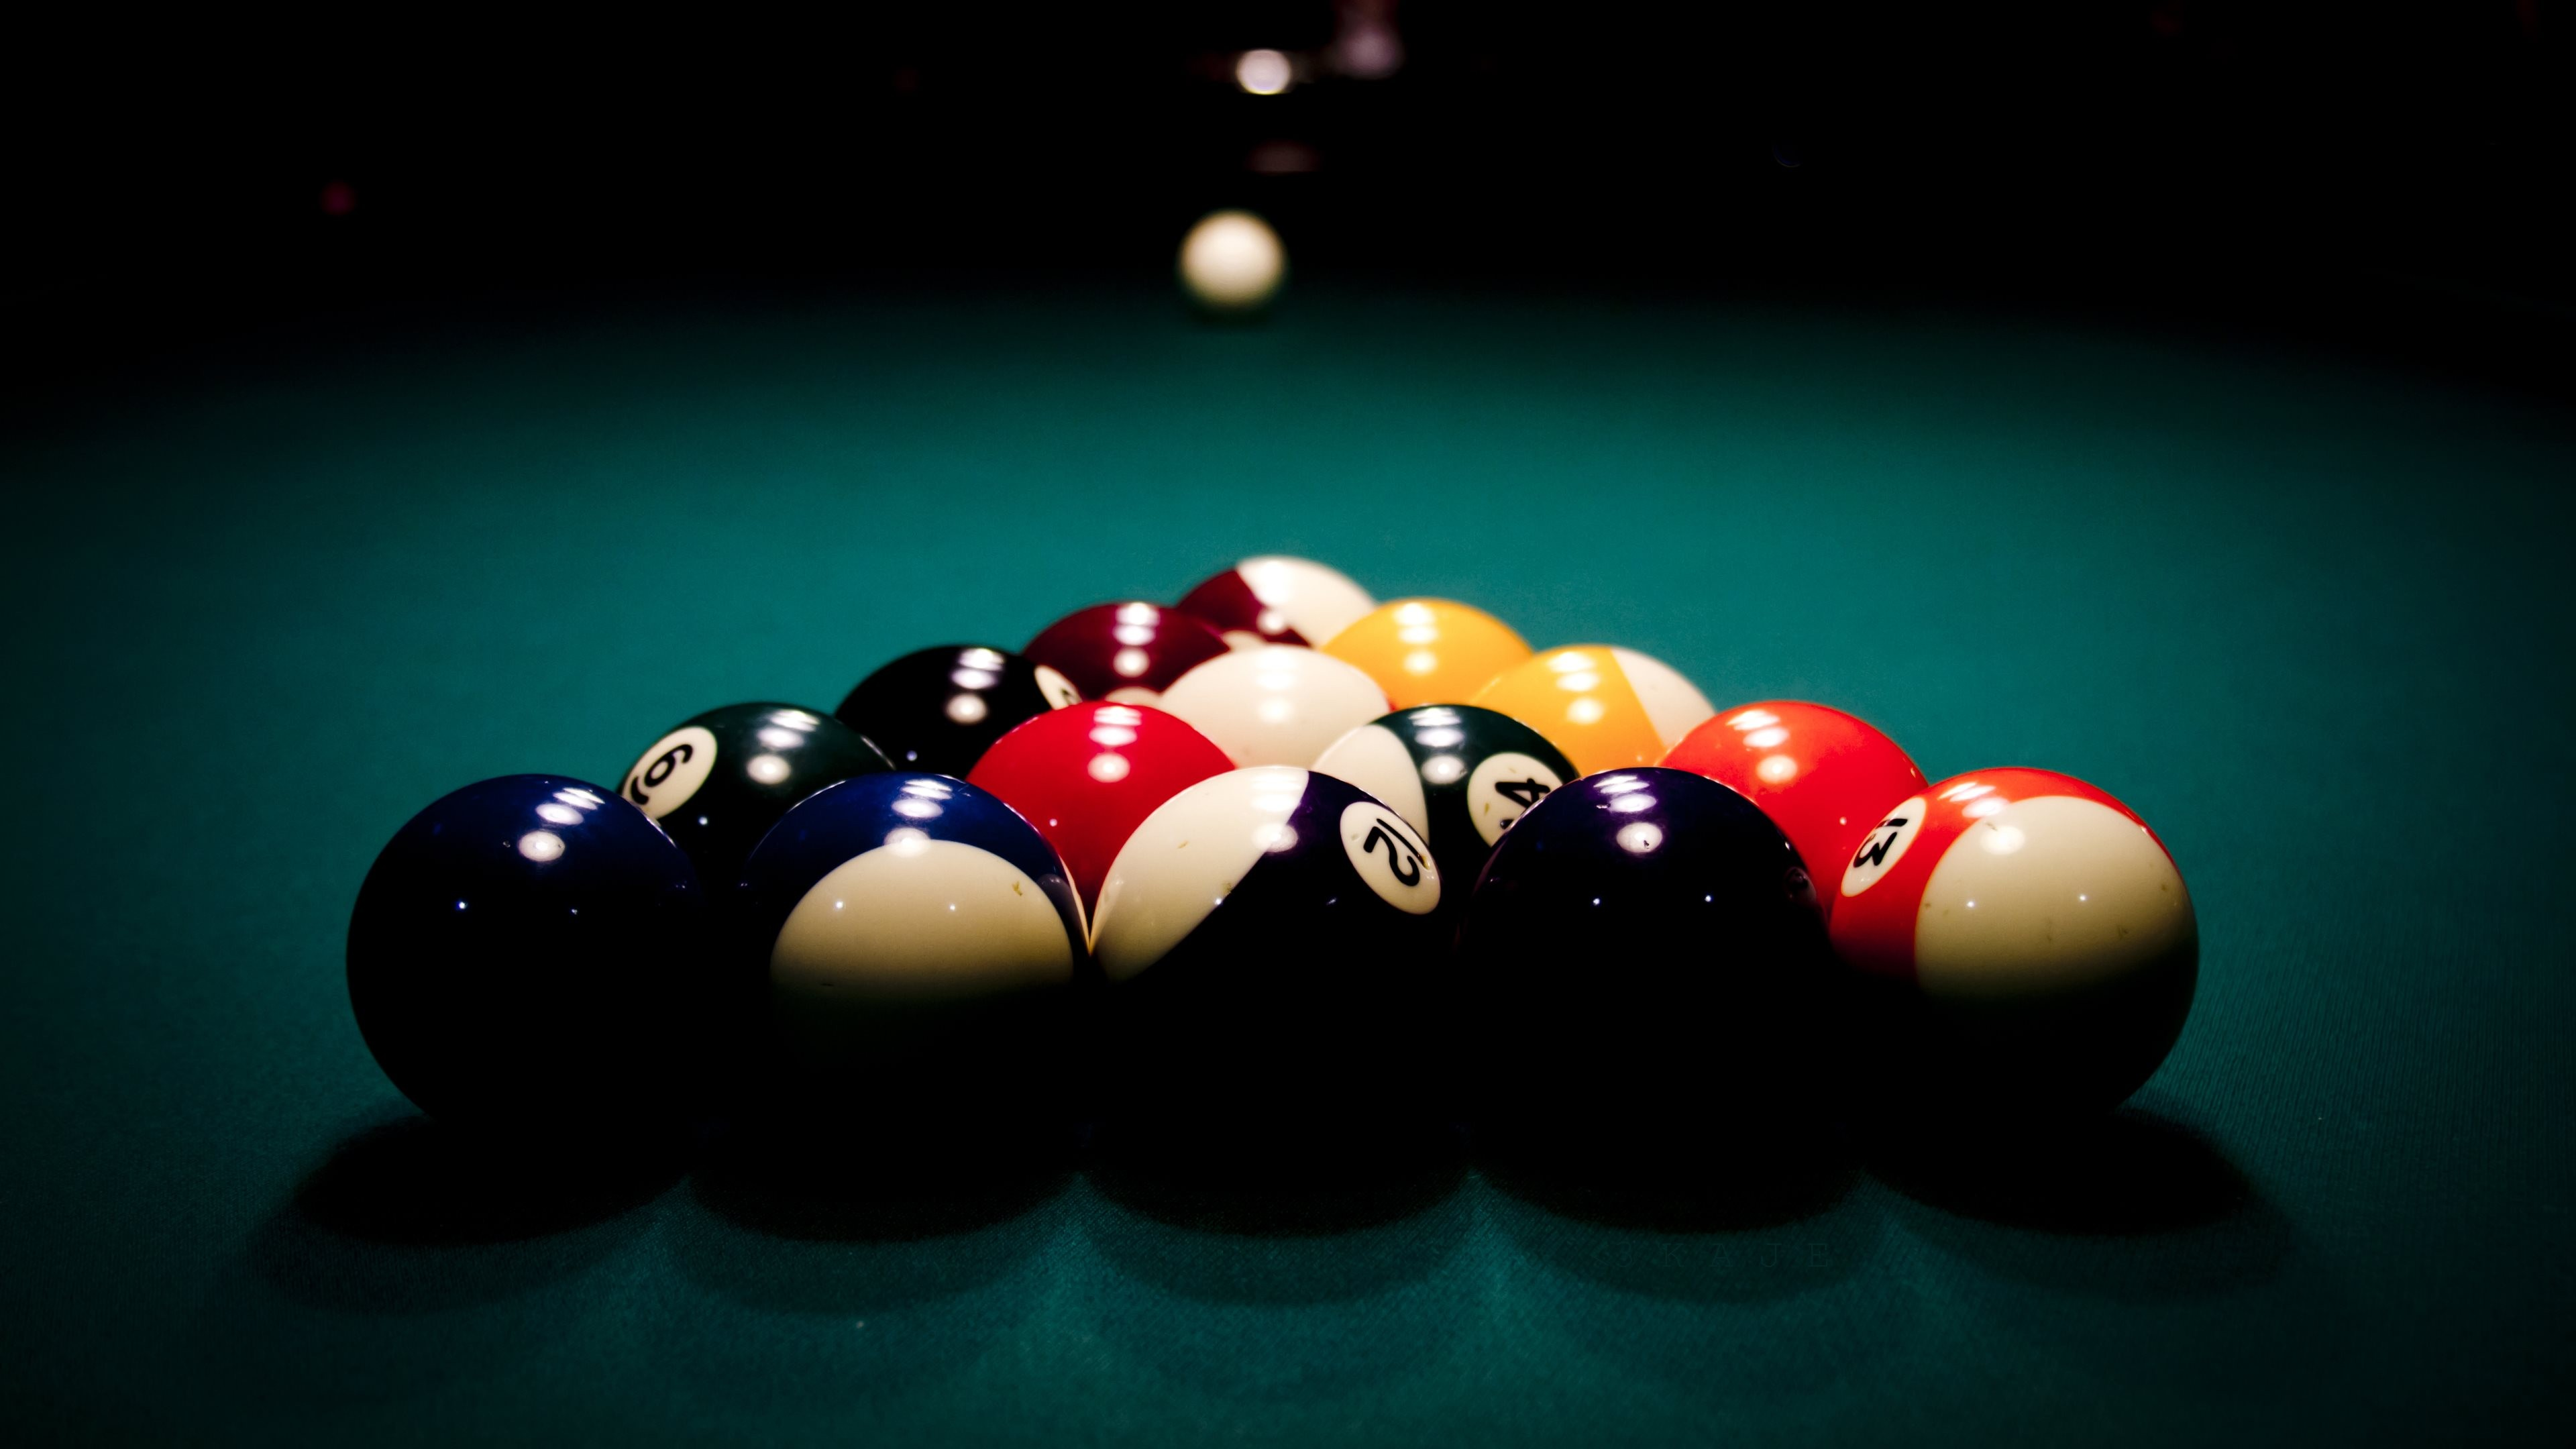 High Resolution Wallpaper | Billard 3840x2160 px